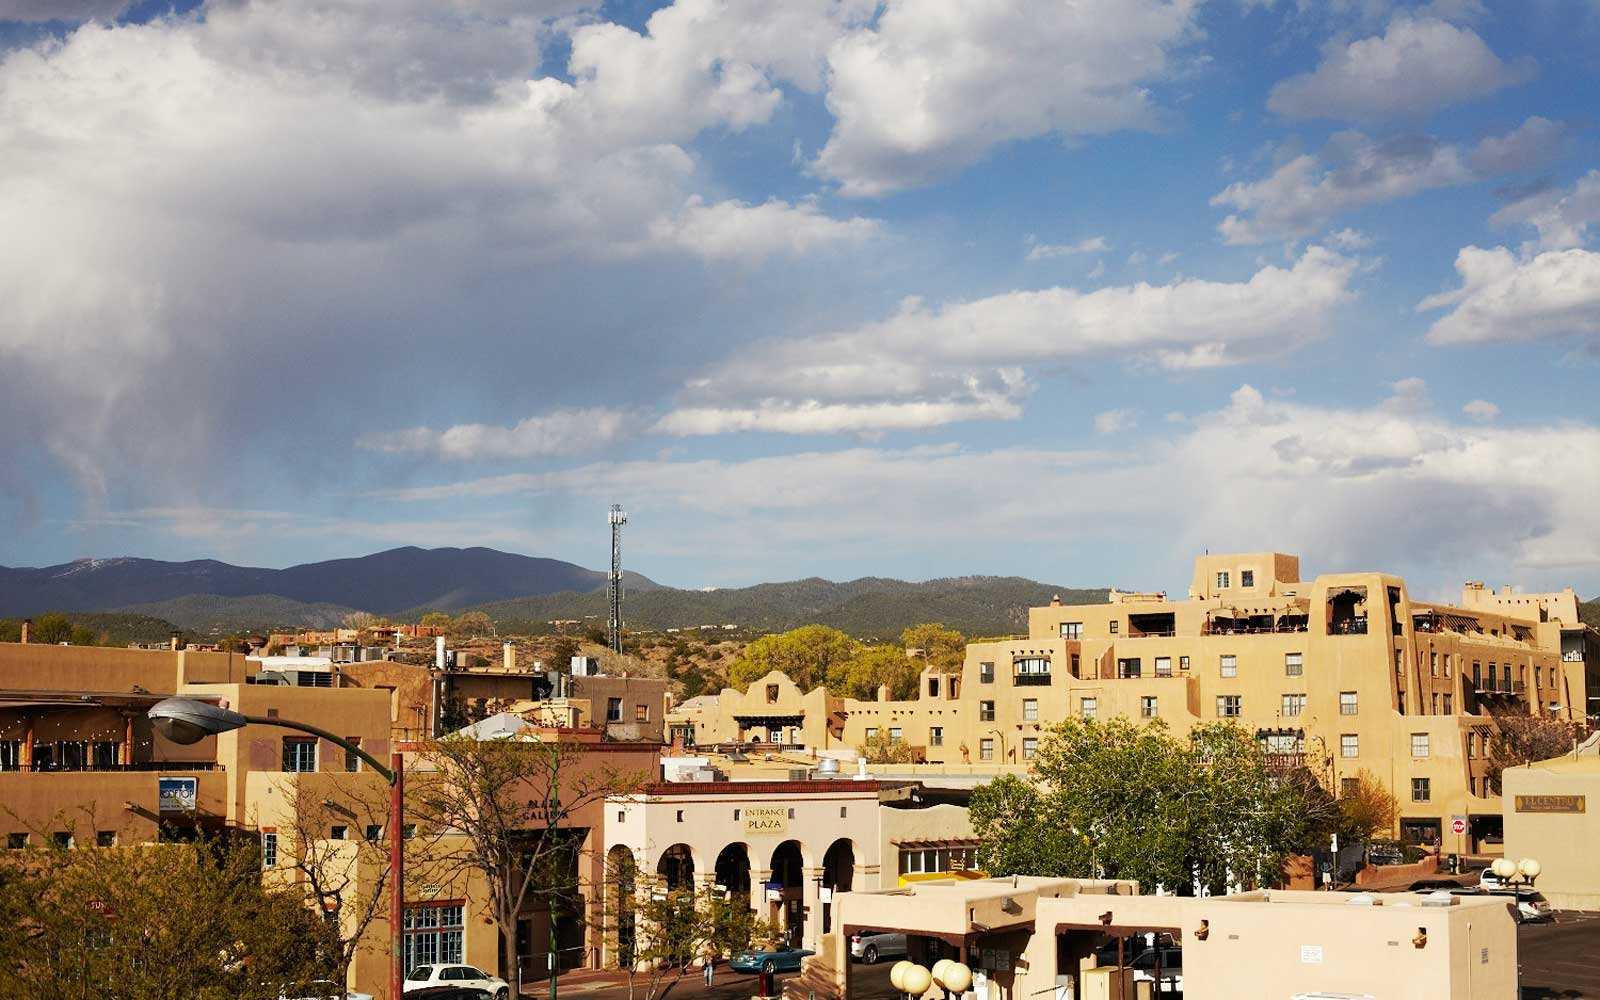 Honeymoon in Santa Fe